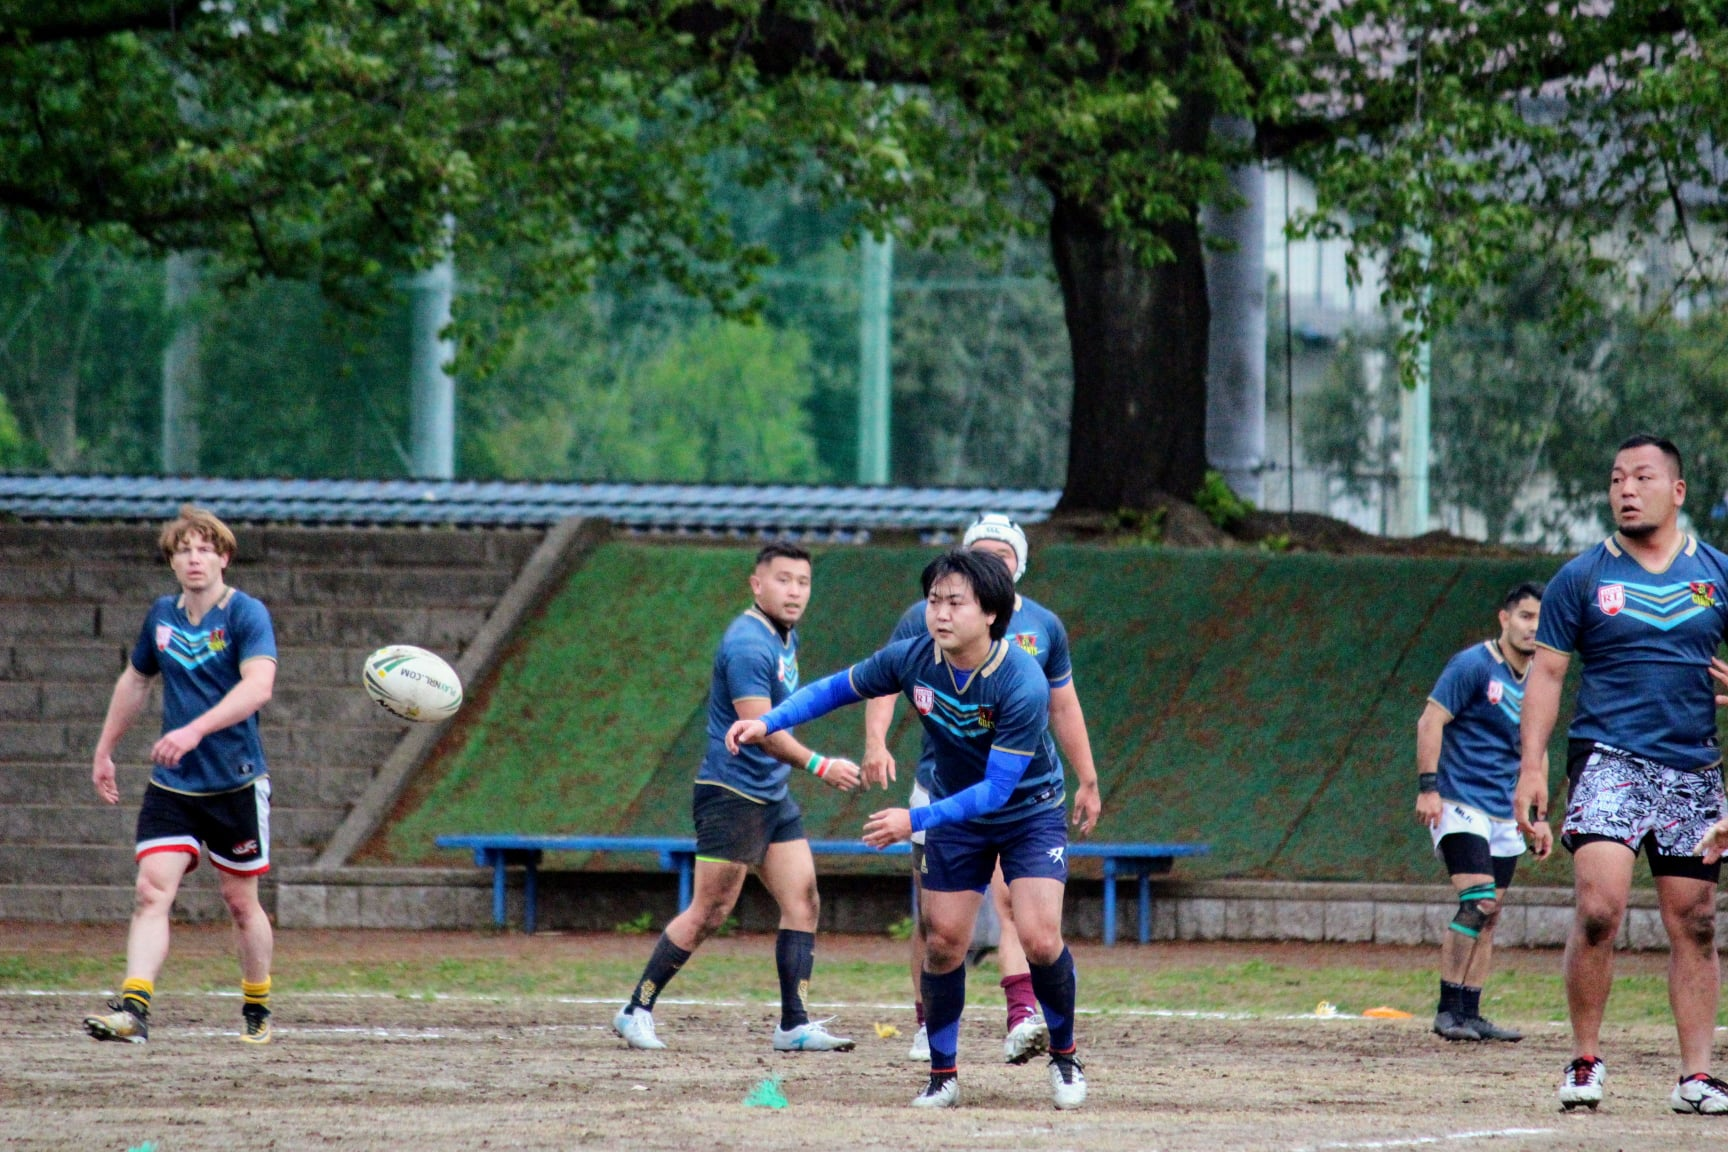 Abiko Ducks to face South Ikebukuro Rabbitohs in Japanese National Cup